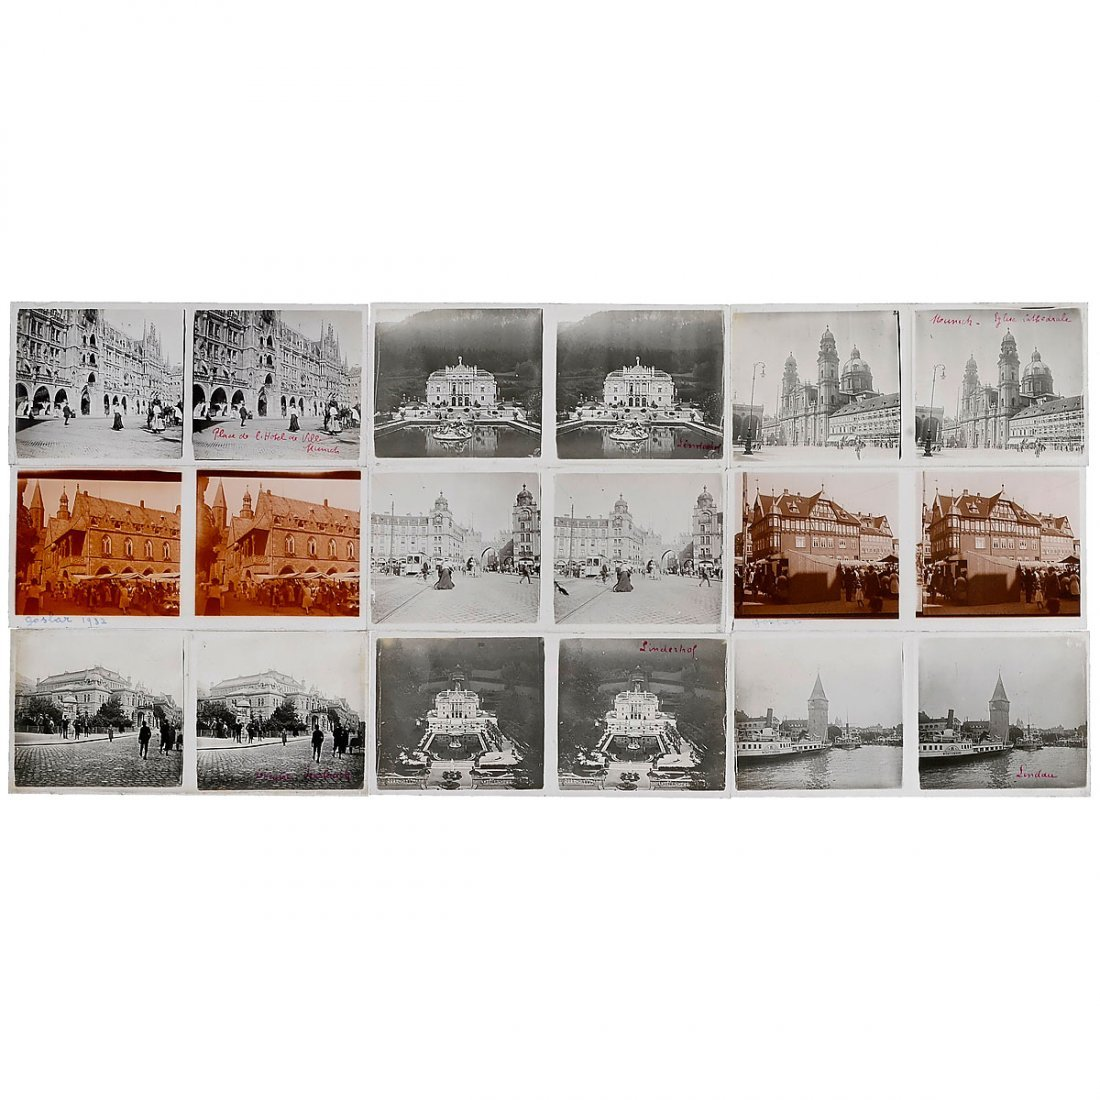 Large Collection of Stereo Glass Slides 6 x 13 cm - 2